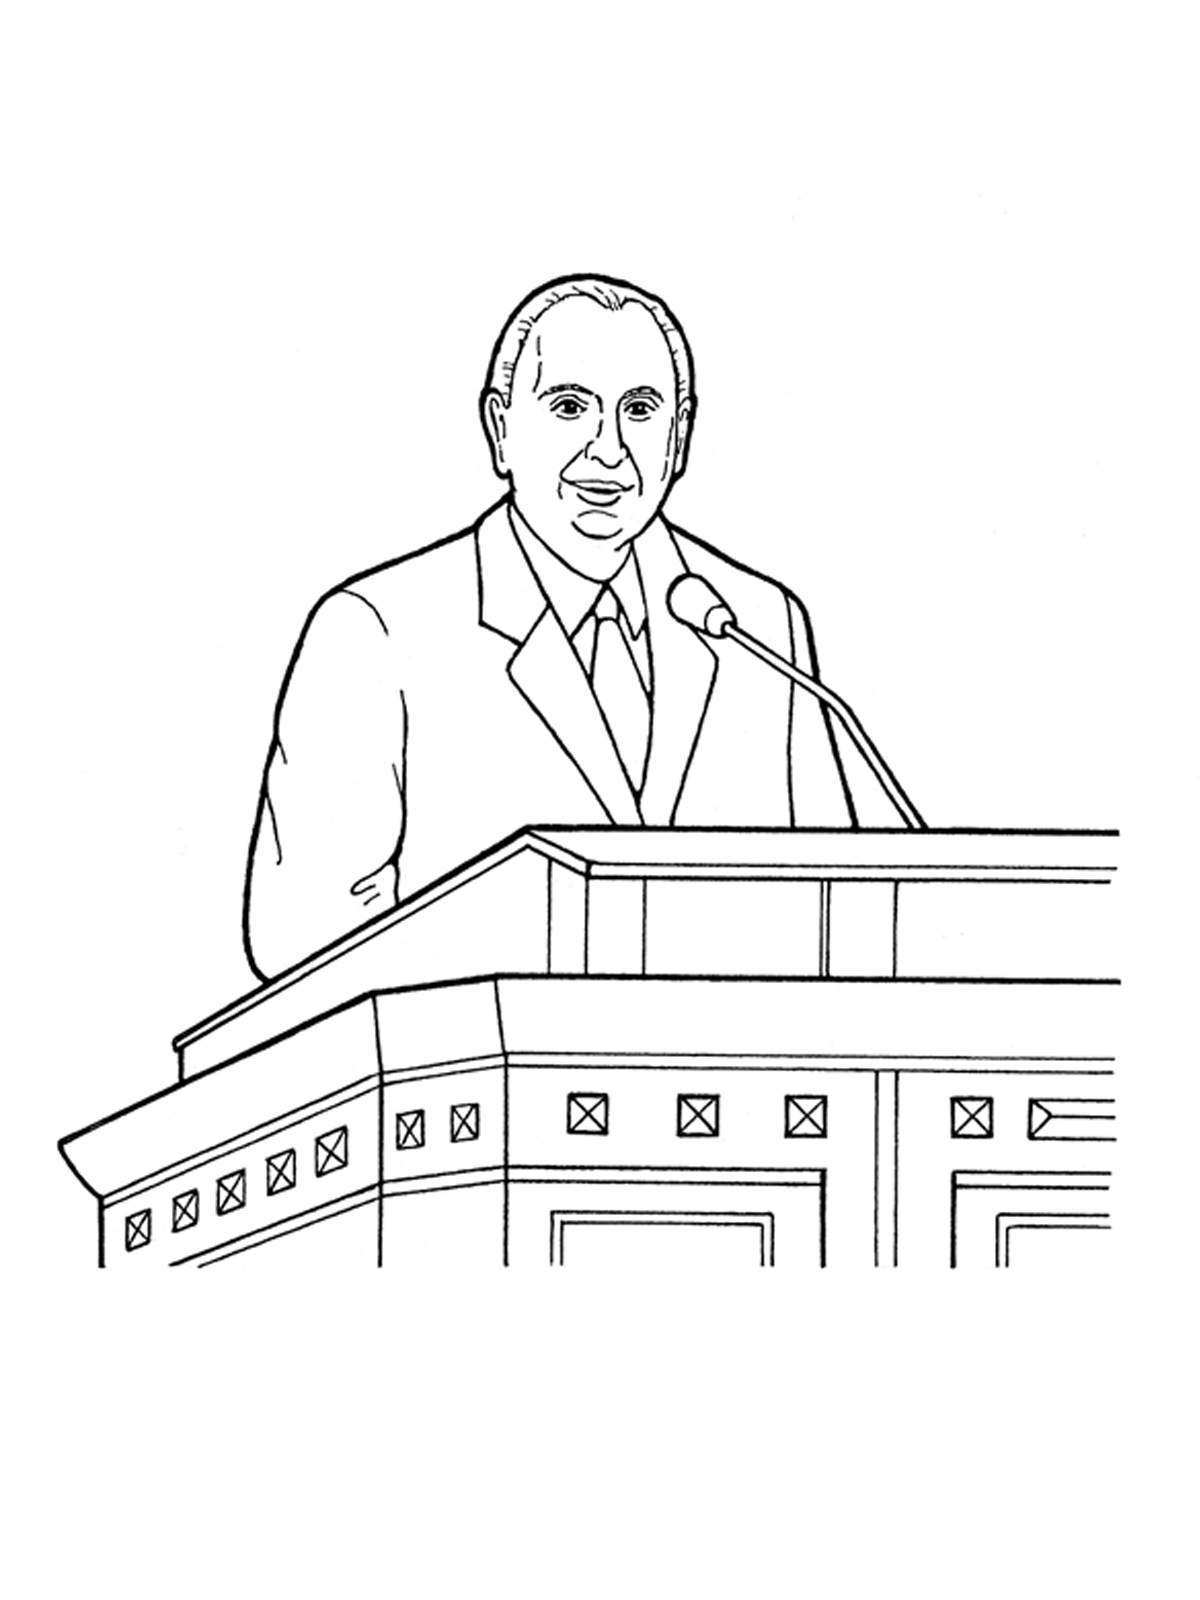 hight resolution of primary clipart general conference lds thomas s monson speaking png royalty free stock